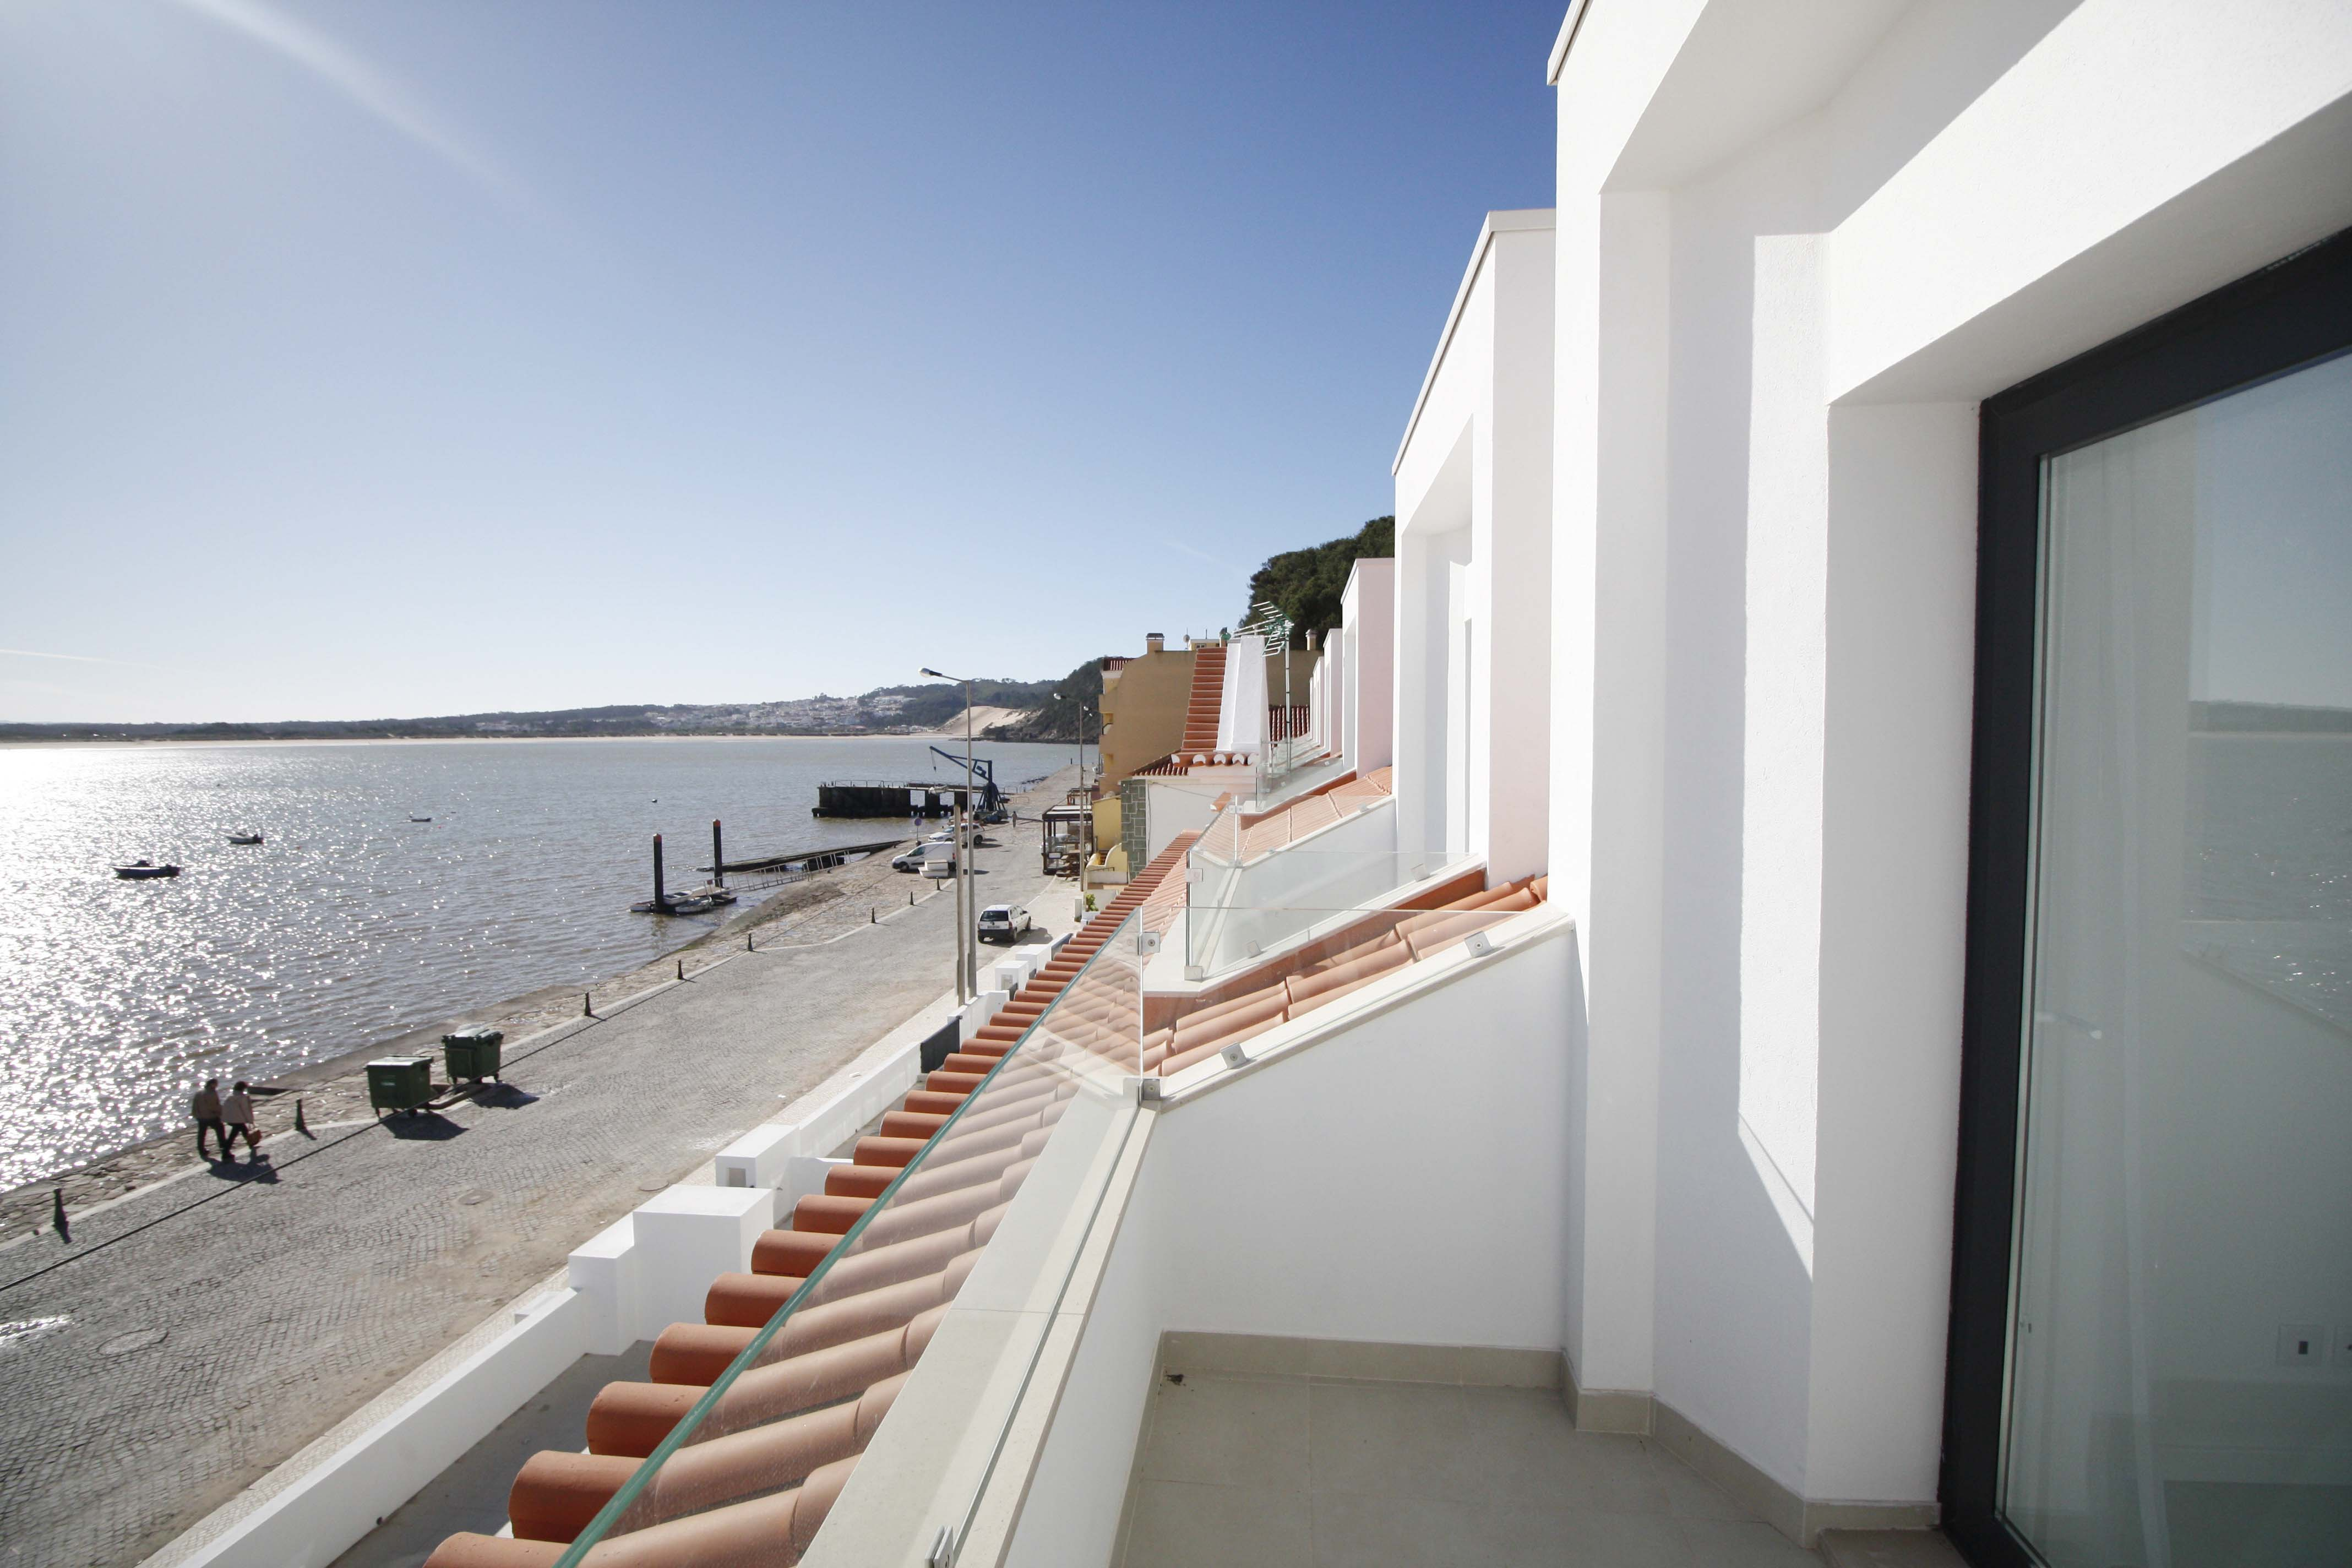 14-cais-sao-martinho-porto-silver-coast-new-buil-construction-portugal-for-sale